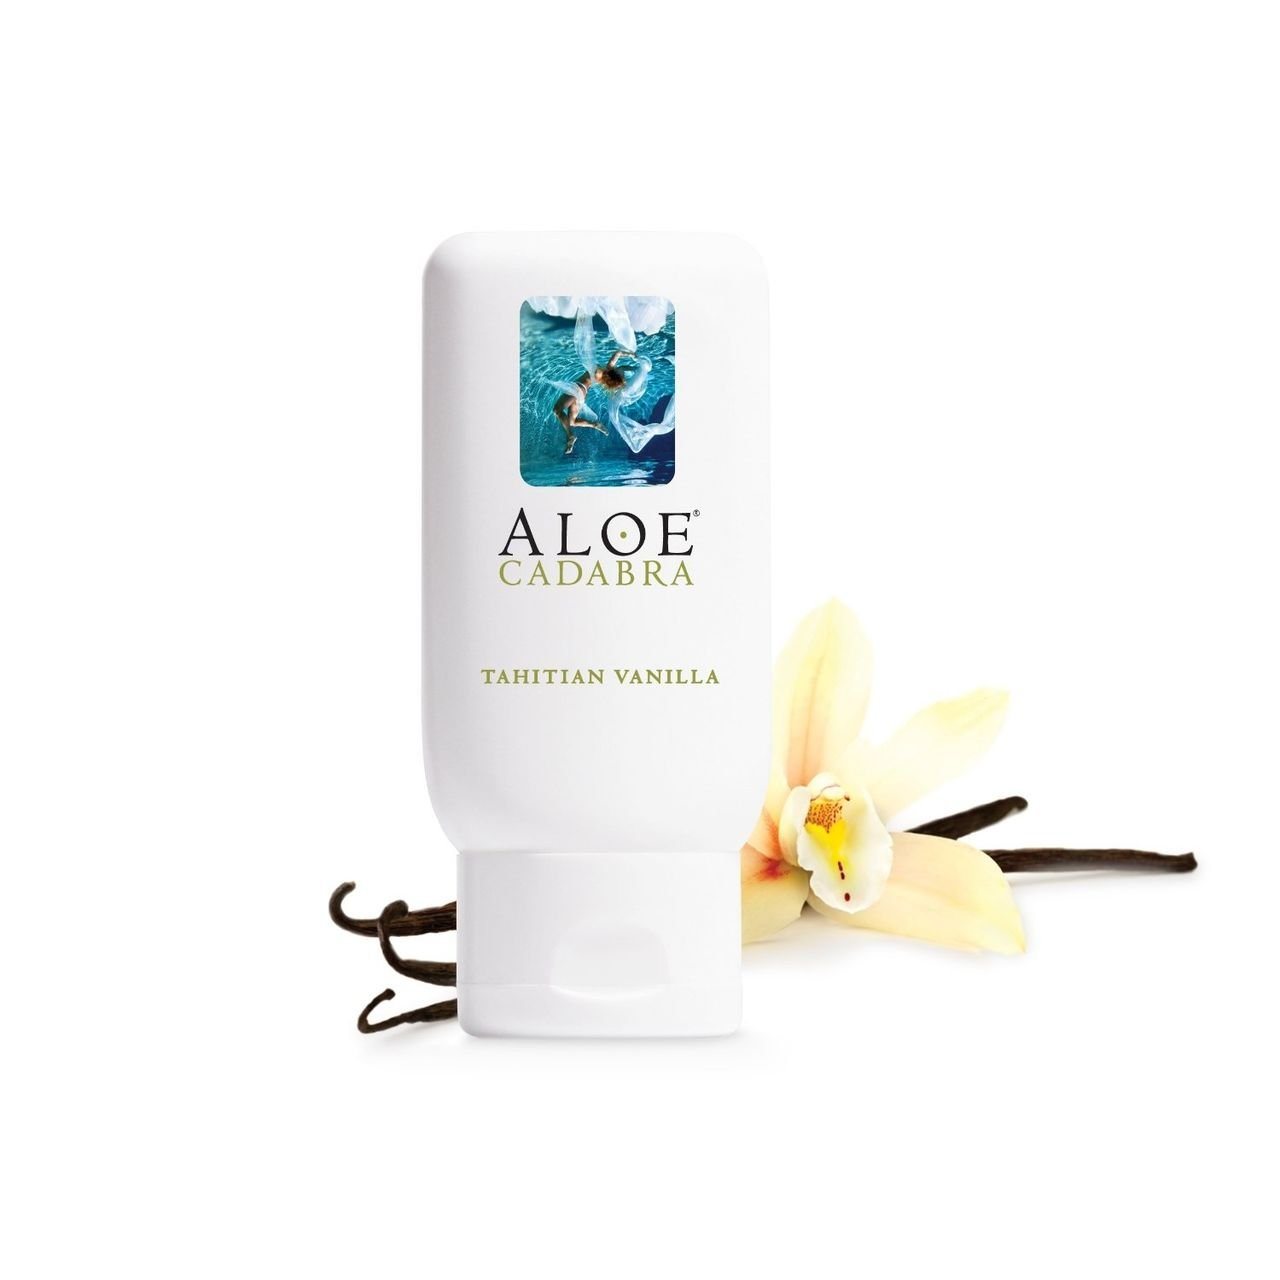 Aloe Cadabra Organic Personal Lubricant and Natural Vaginal Moisturizer with 95% Aloe Vera, Flavored Tahitian Vanilla, 2.5 Ounce